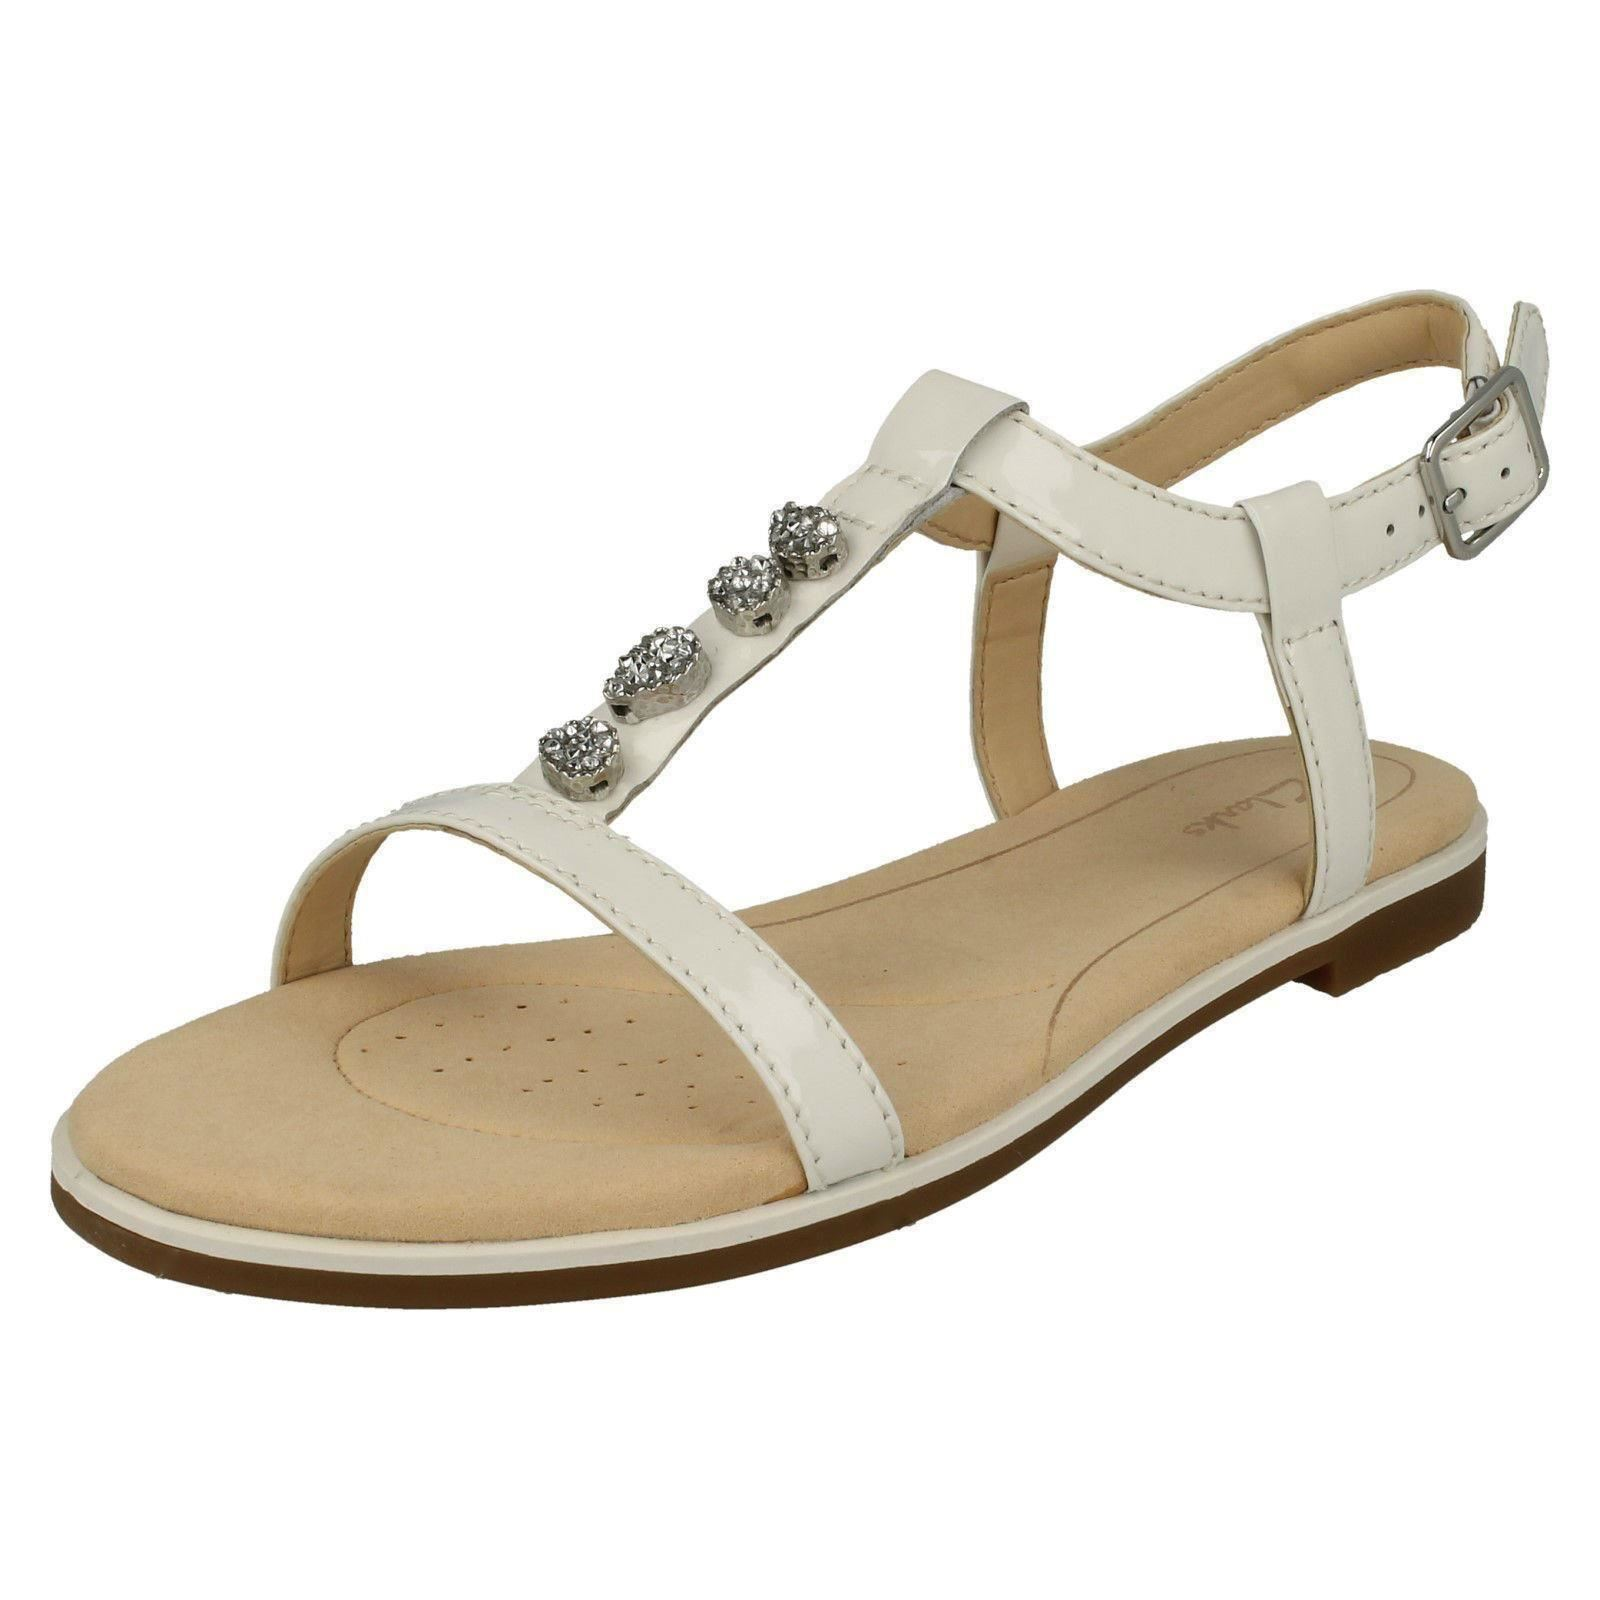 65cbc0043d53b4 Clarks Ladies Casual Slingback Sandals - Bay Blossom White UK 4 D. About  this product. Picture 1 of 8  Picture 2 of 8 ...